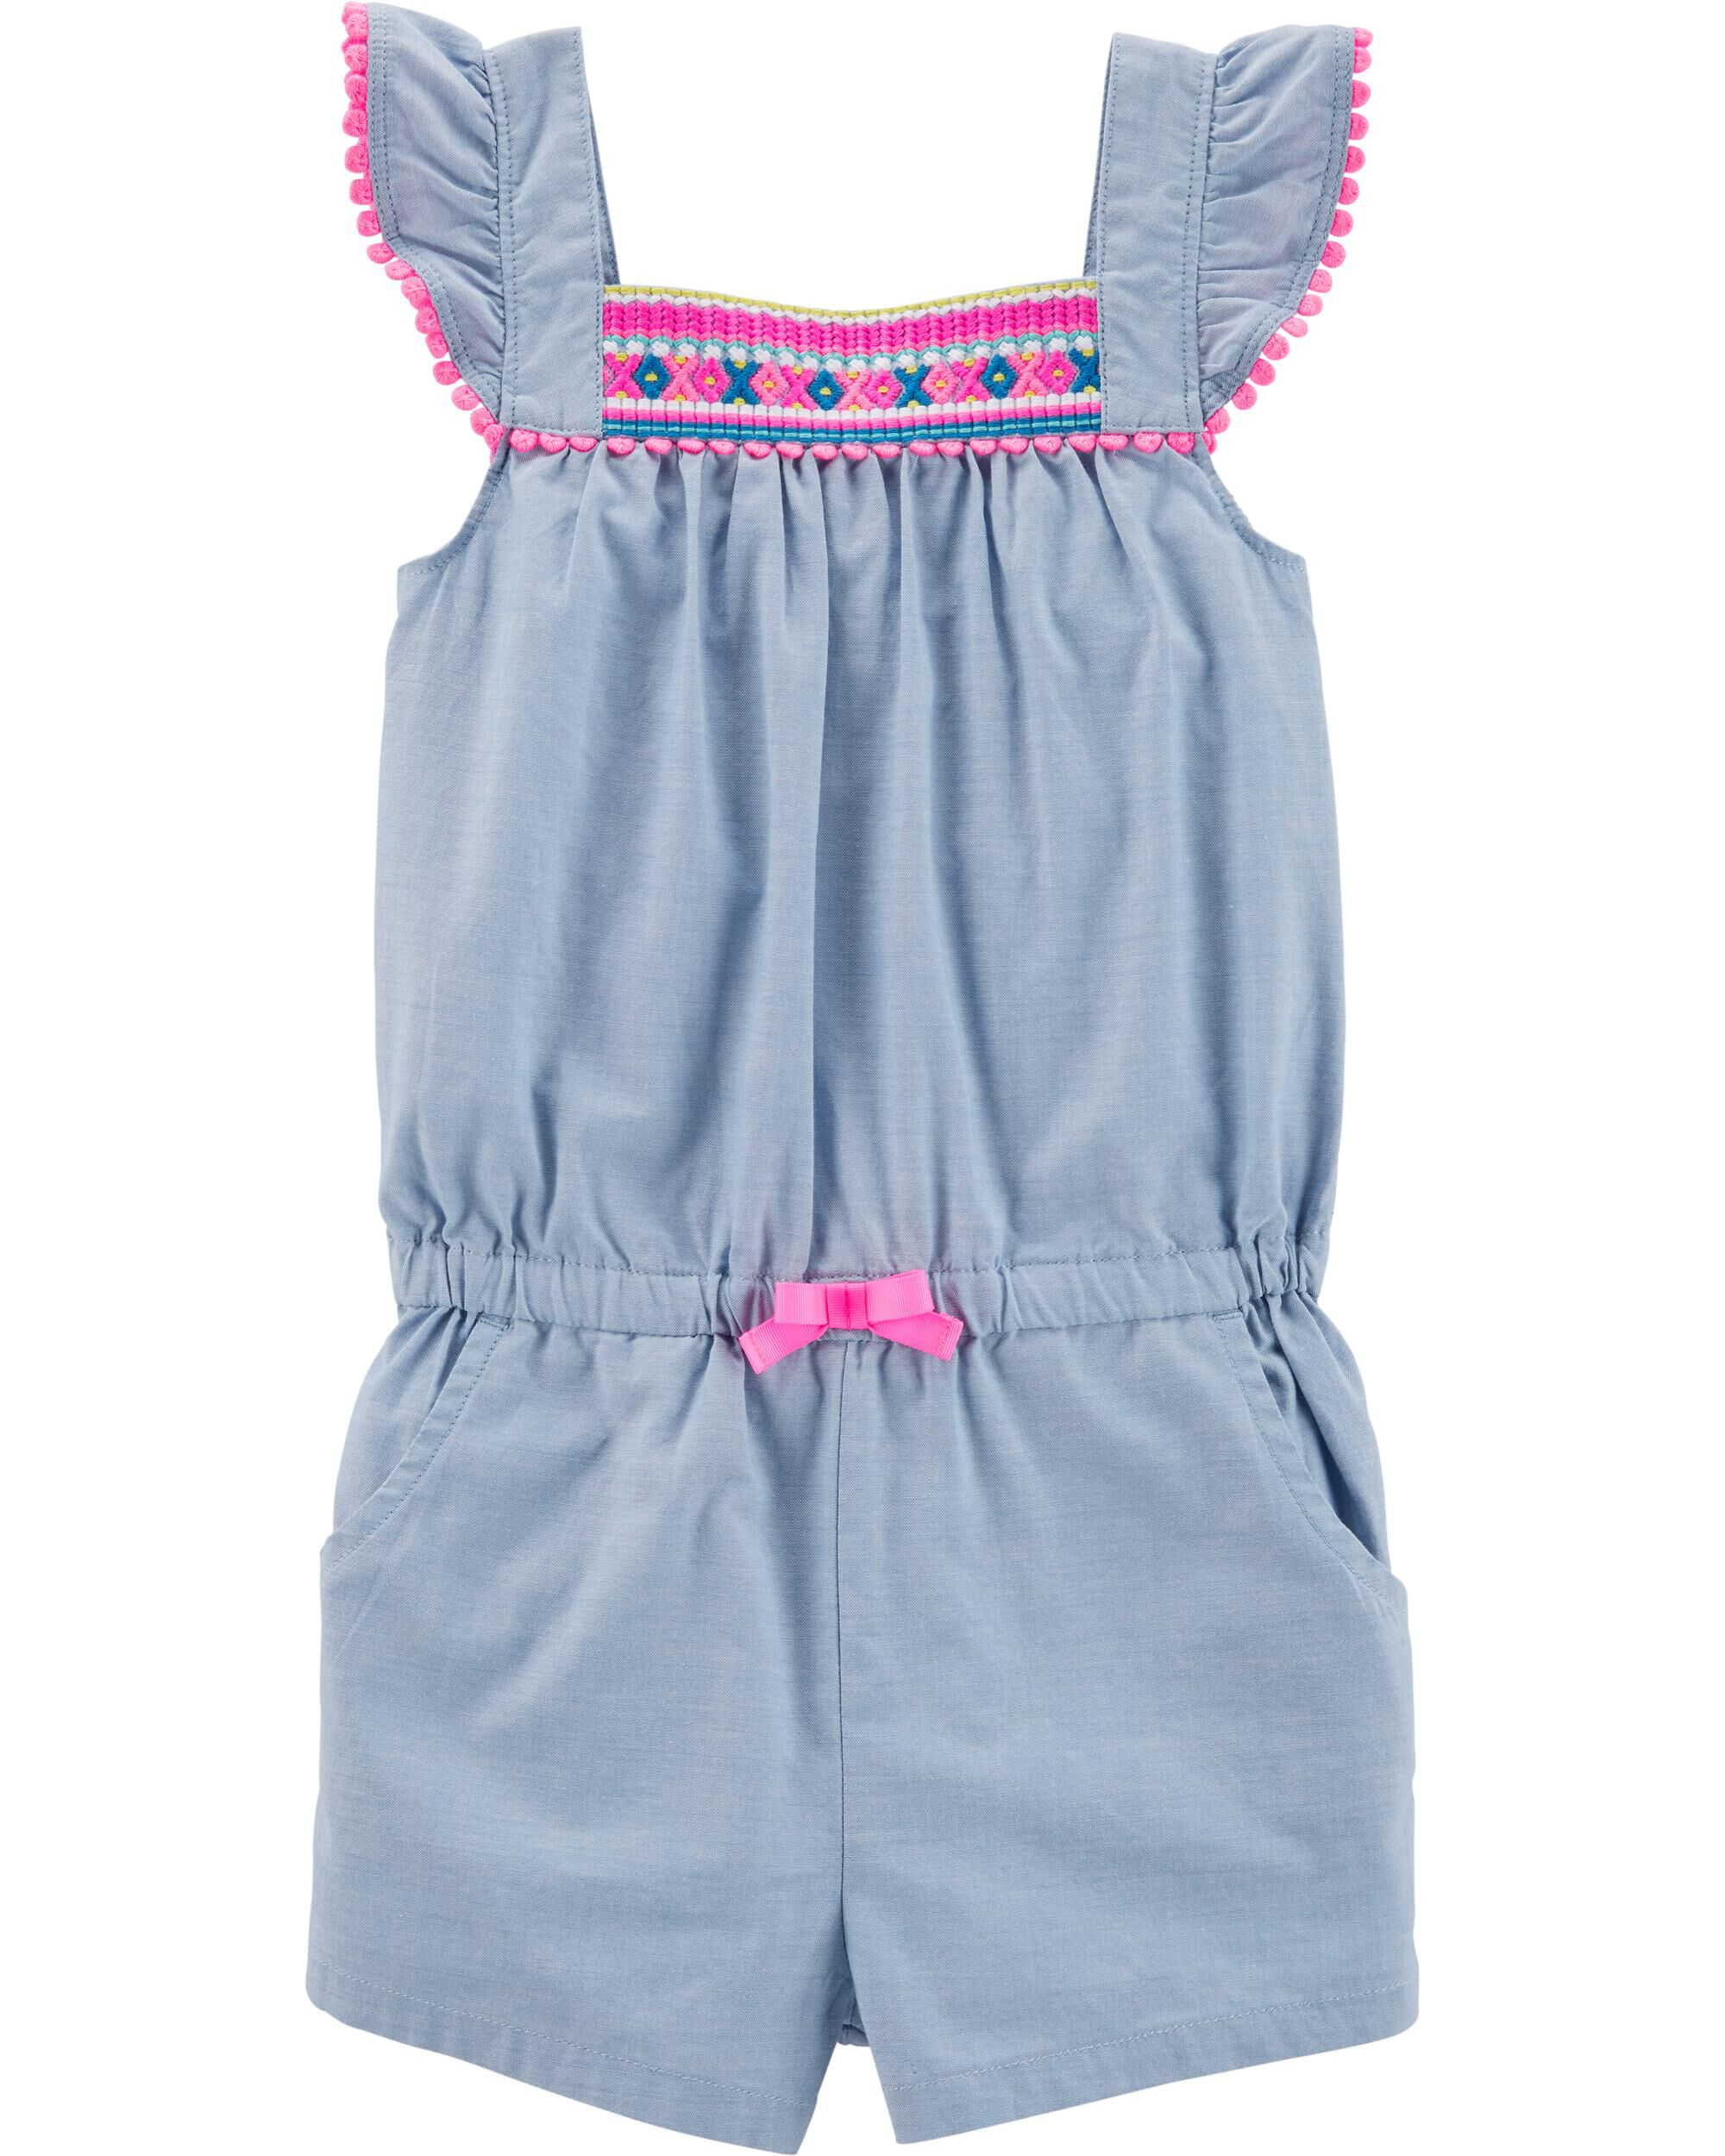 Carter's Baby Girl Skirt 6m Tropical Skirt With Built In Pants Free P+p Big Clearance Sale Girls' Clothing (0-24 Months) Clothes, Shoes & Accessories